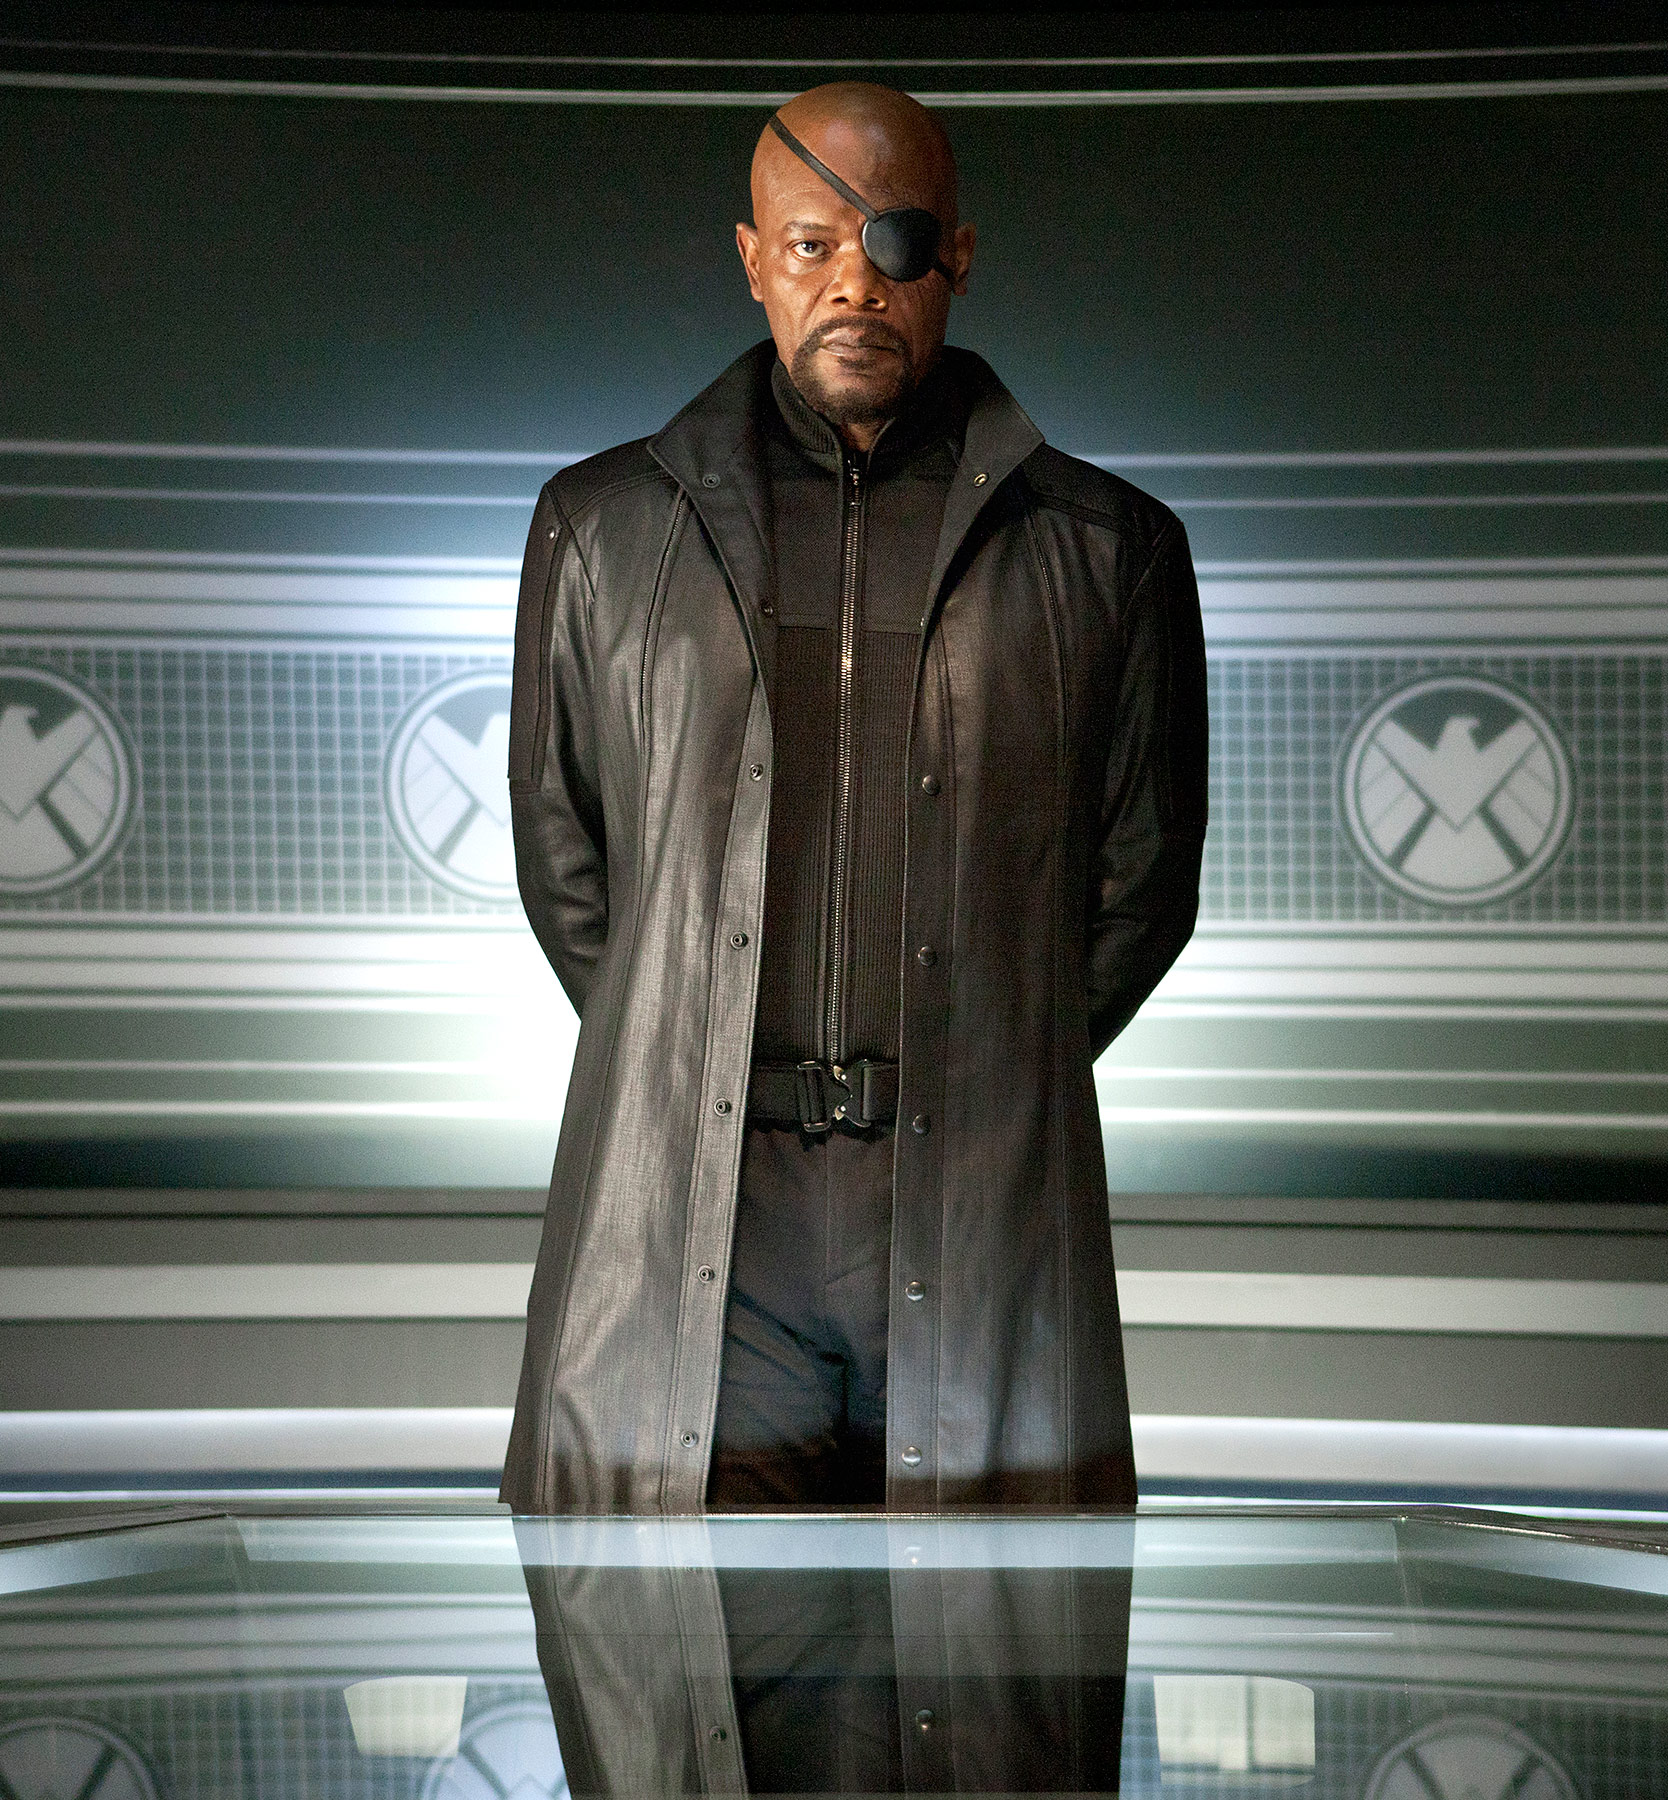 In 2014's Captain America: The Winter Soldier, Samuel L. Jackson reprised his Iron Man and Avengers role as eye-patched S.H.I.E.L.D agent Nick Fury.